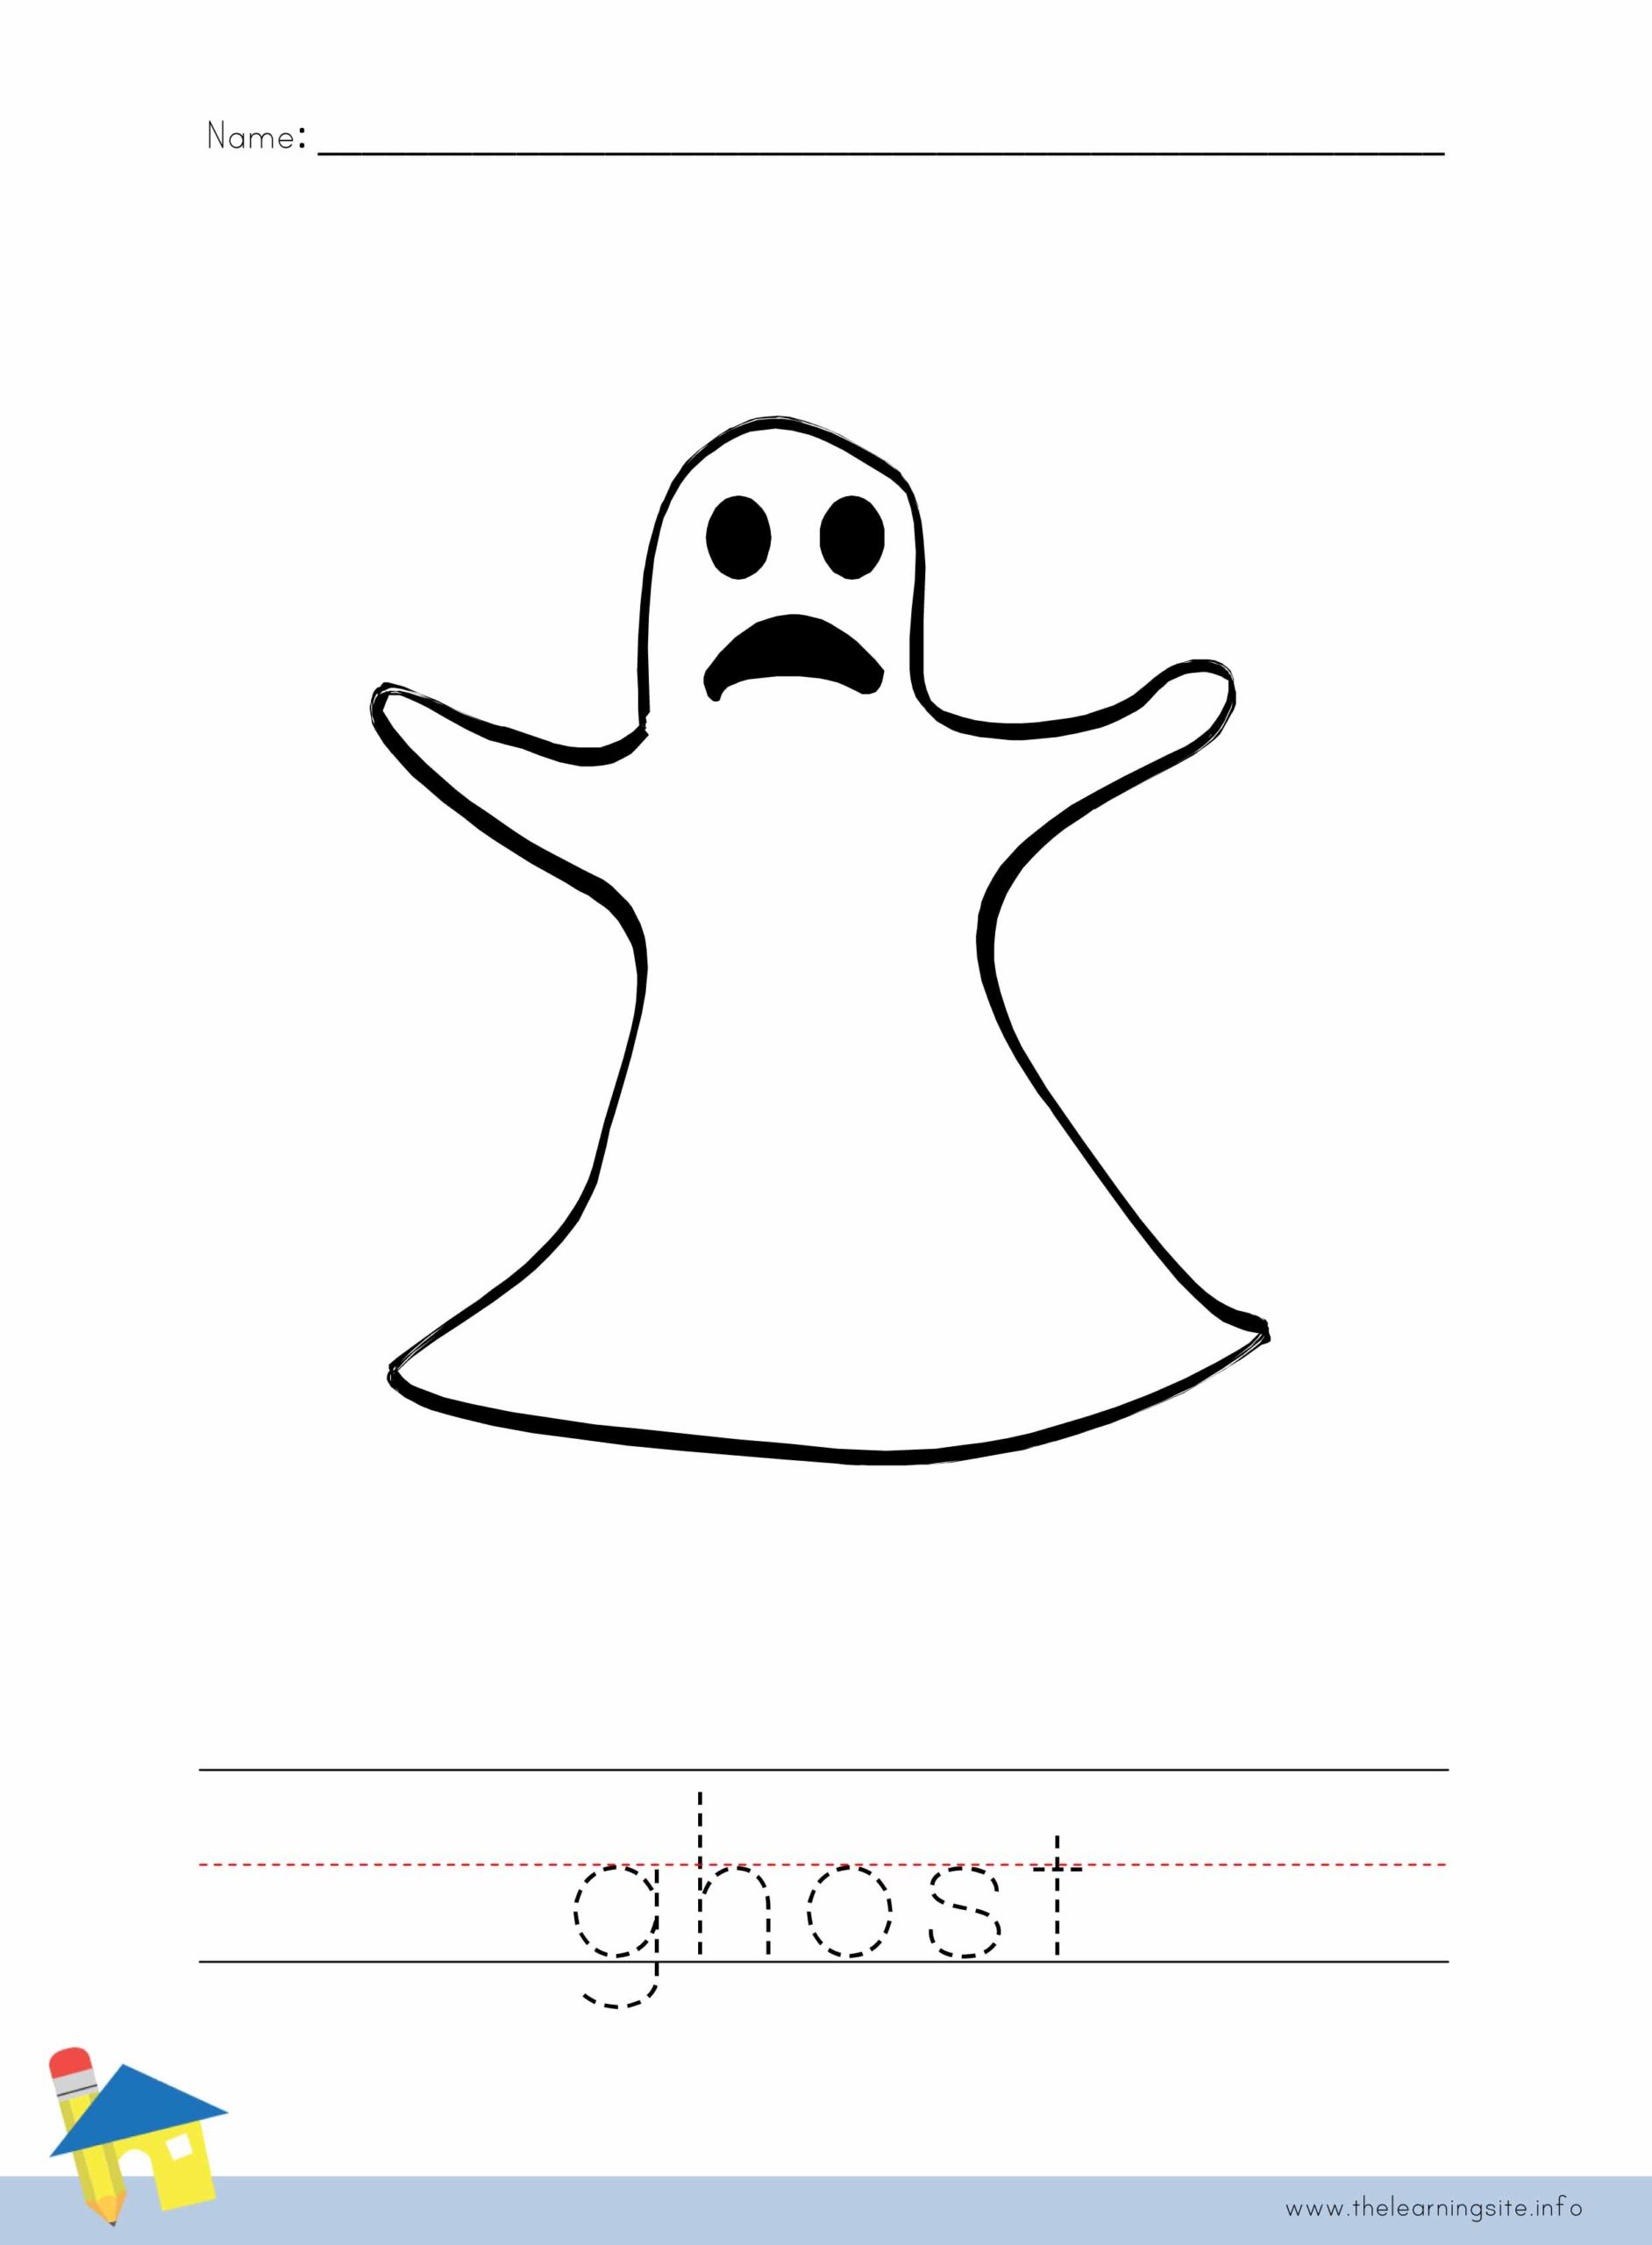 Ghost Coloring Worksheet The Learning Site